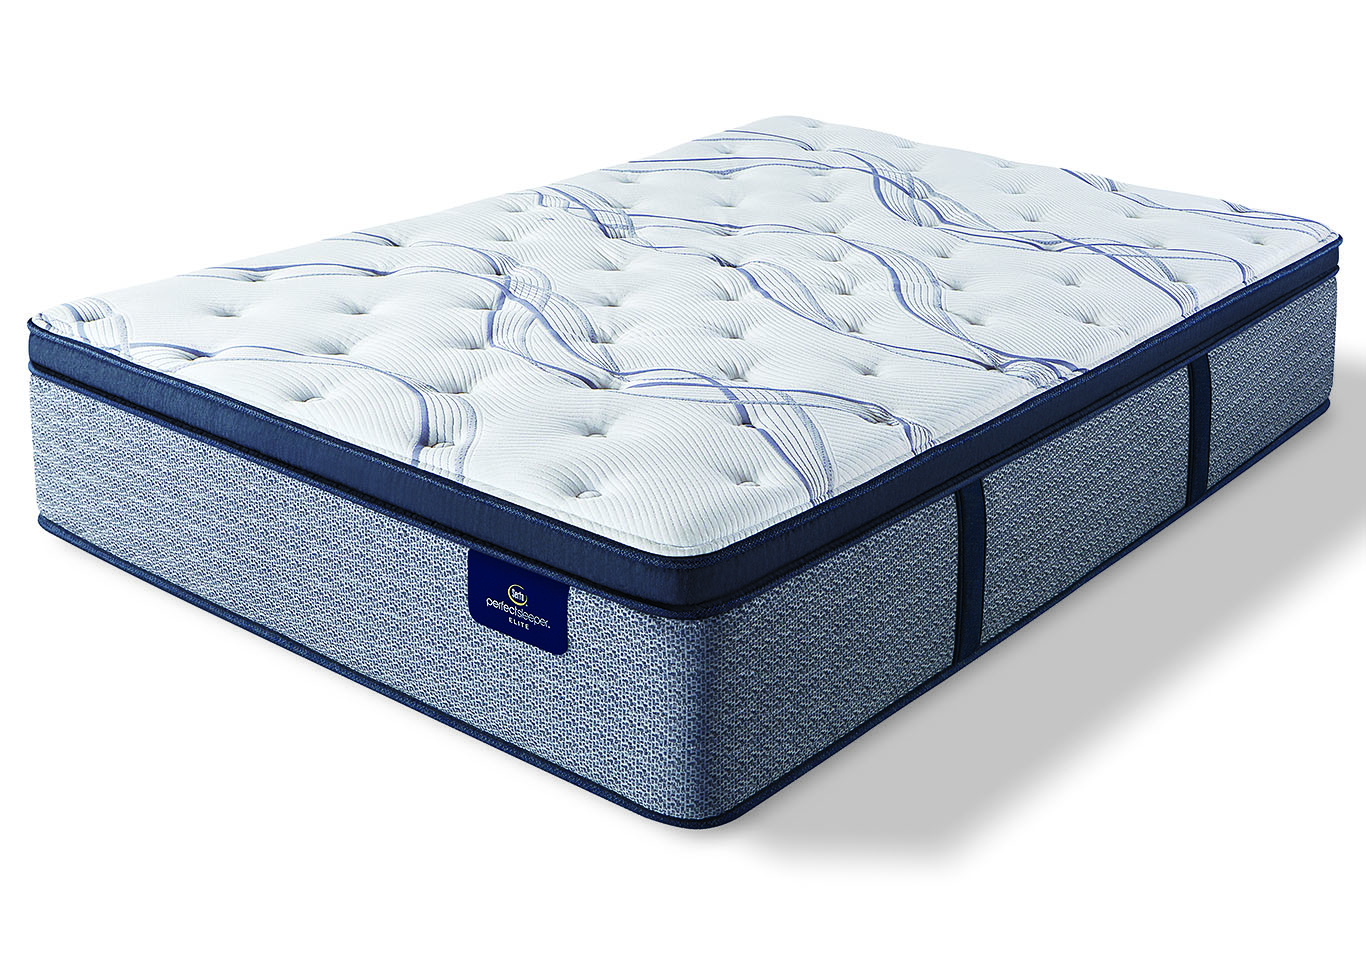 Trelleburg II Plush PT Full Mattress,Huffman Koos